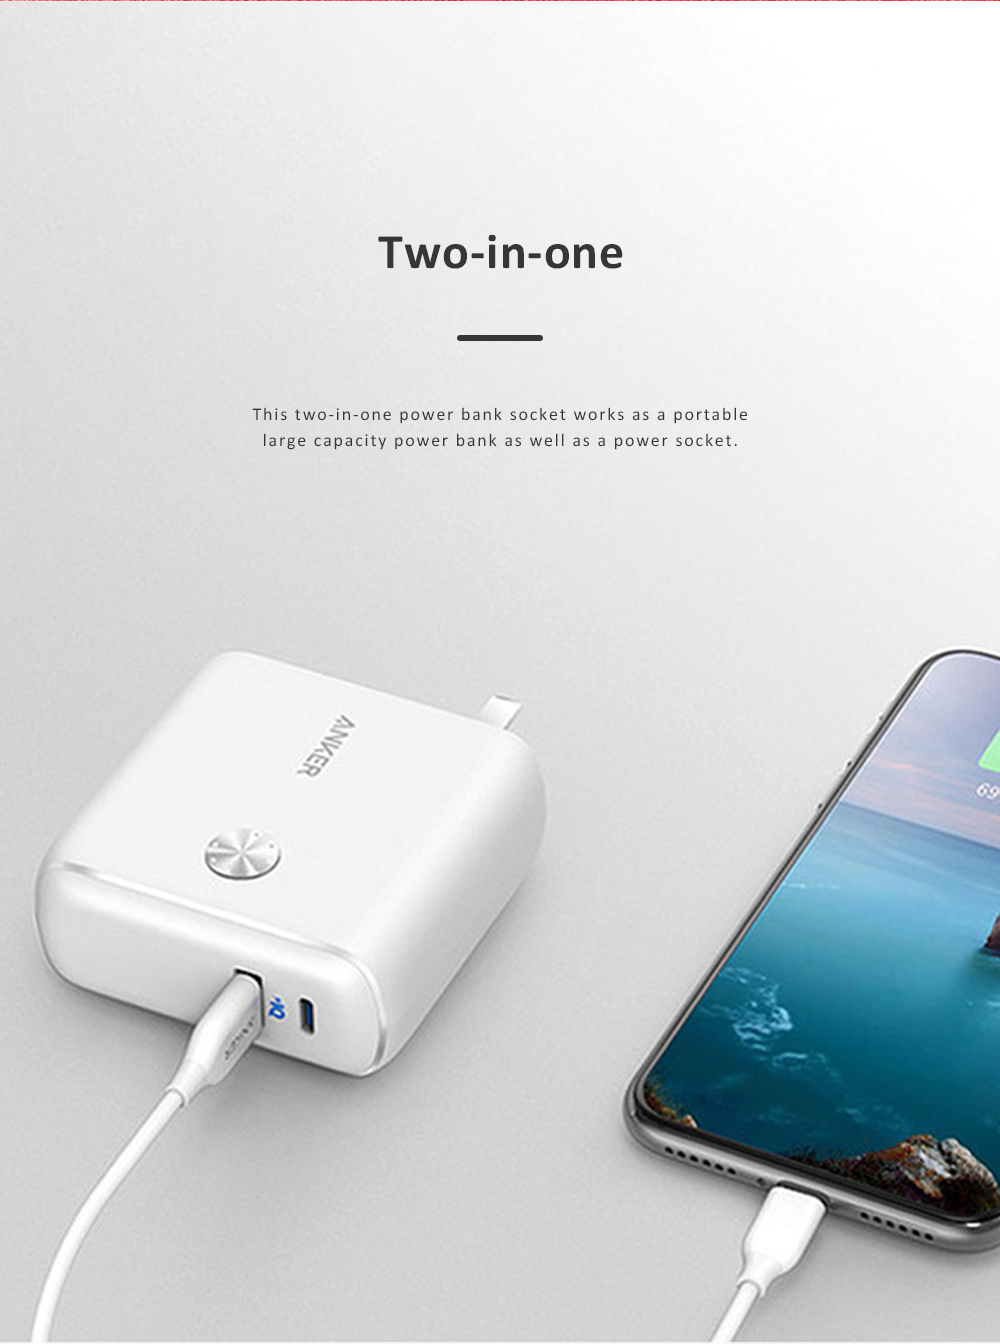 Anker 2 in 1 Power Bank Station Socket for Outdoors Travelling Quick Charge Portable Recharge Switch Power Socket 1